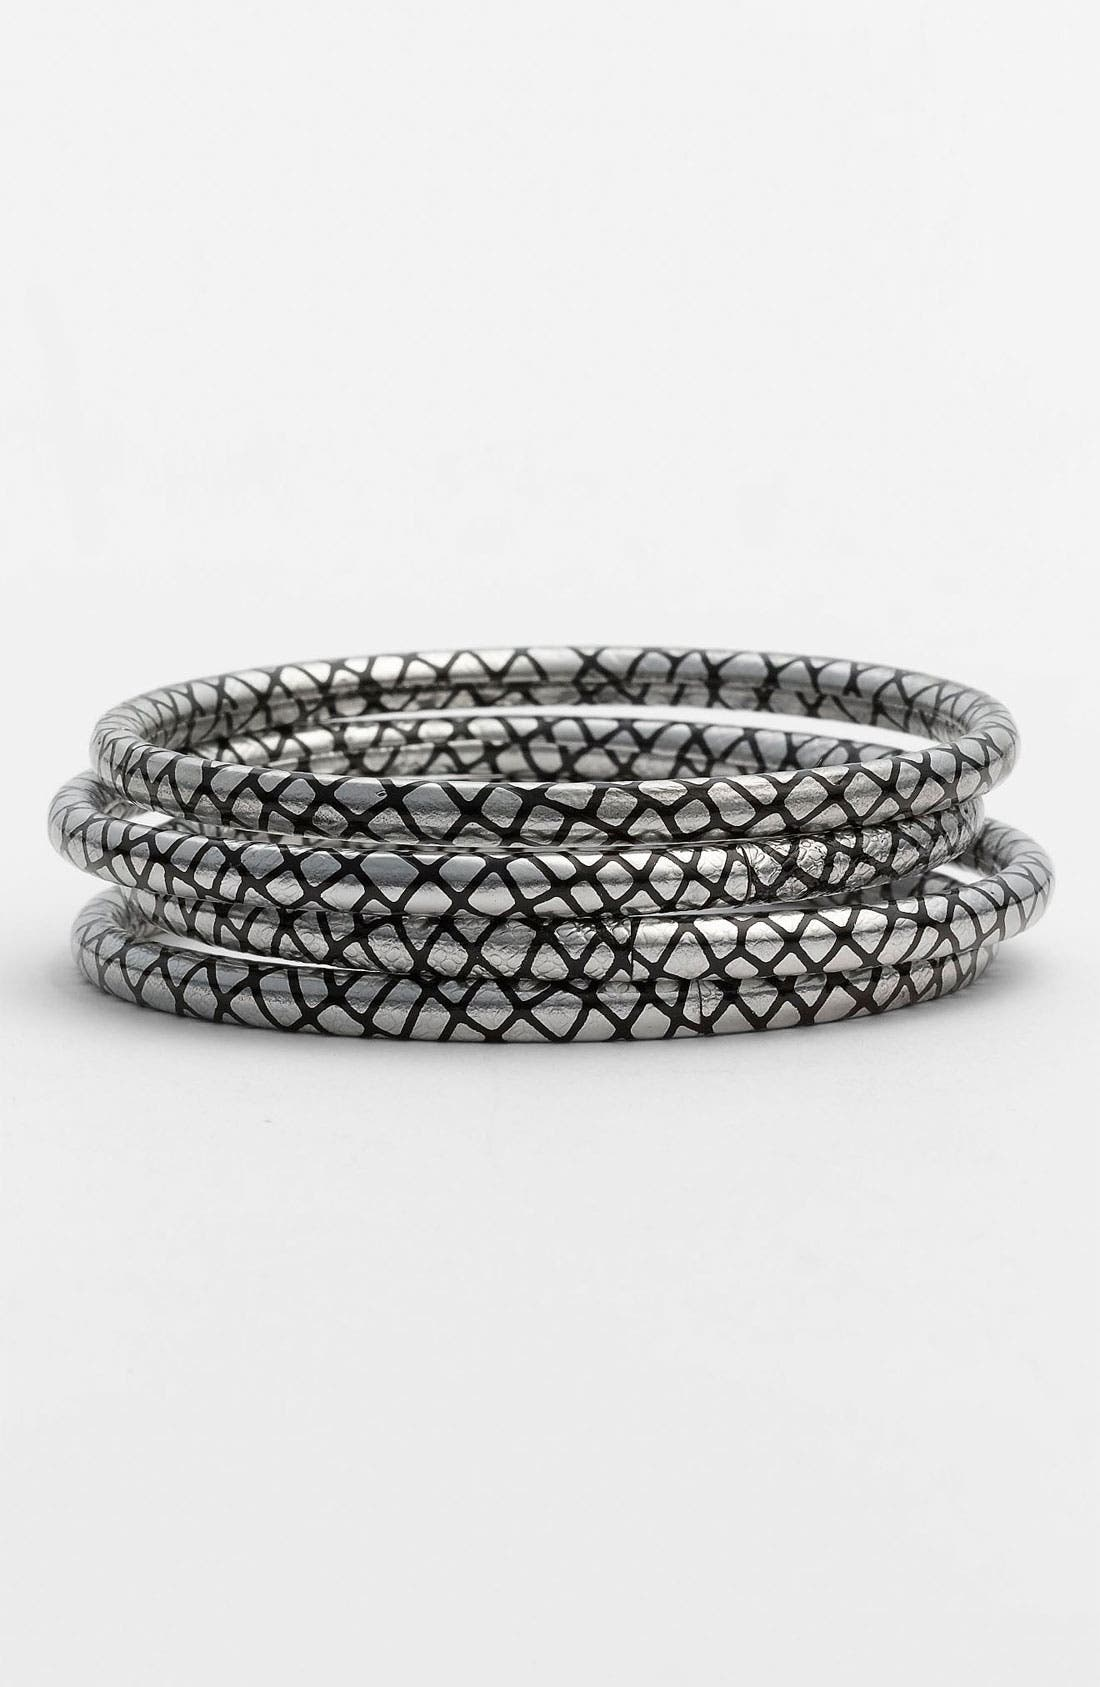 Alternate Image 1 Selected - Chamak by Priya Kakkar Fishnet Bangles (Set of 4)